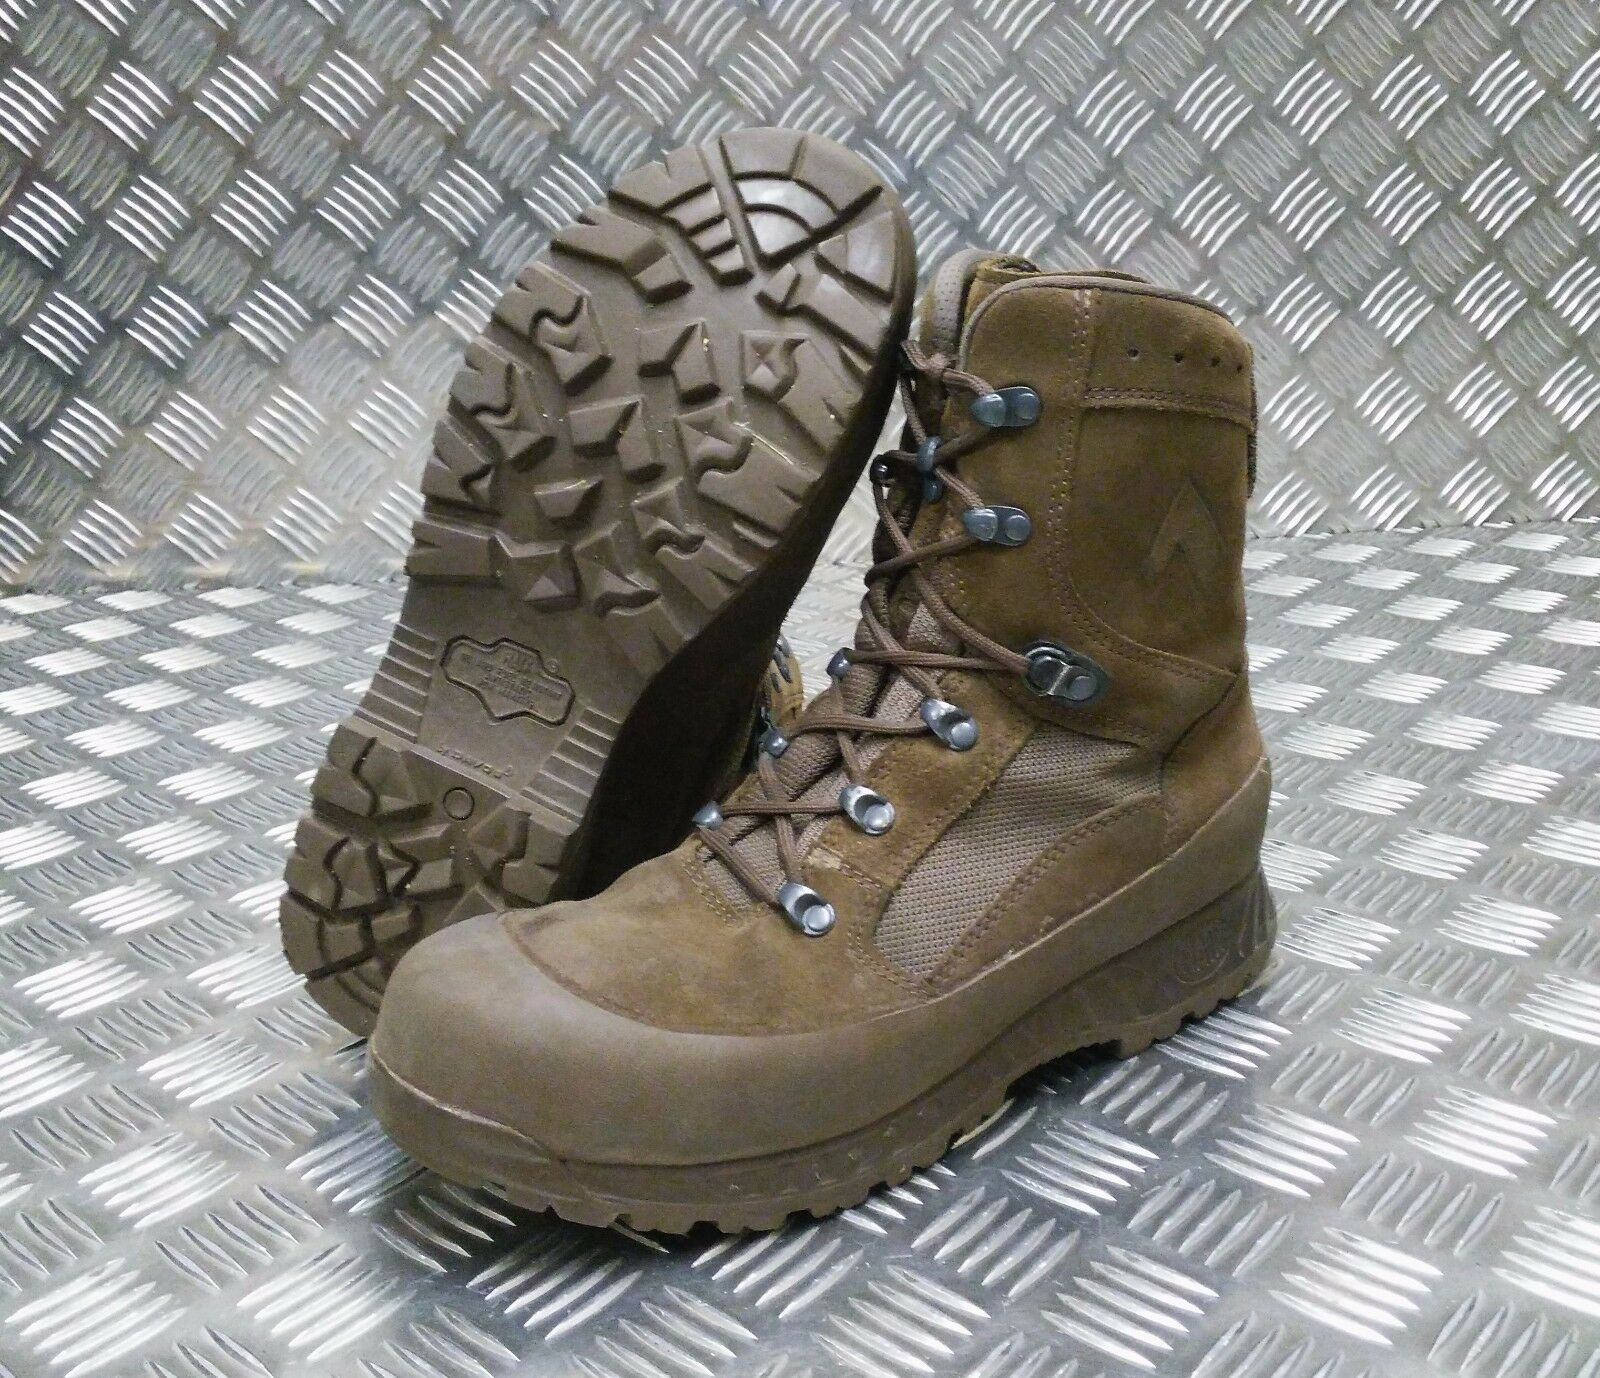 Genuine British Army Haix Desert Suede Leather Boots Assault / Patrol Combat Boots Leather SL e79a3e